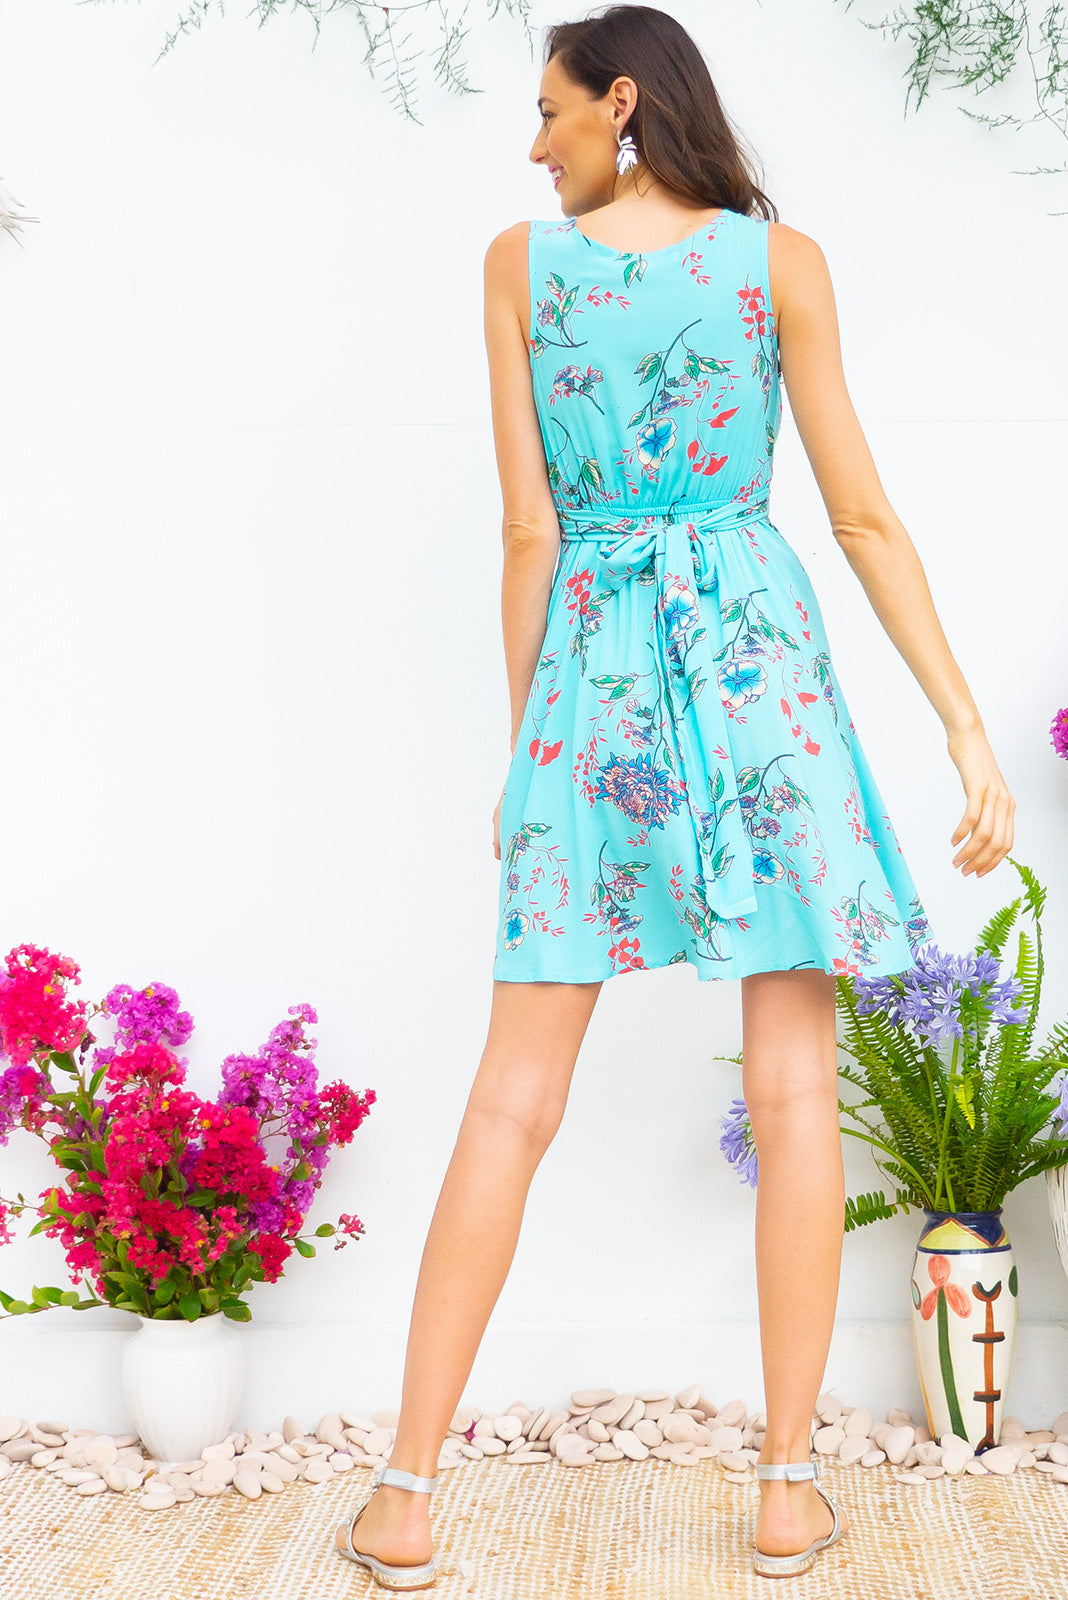 Little Darling Turquoise Skies Dress tie front wrap dress with an elastic waist and a plunging v neckline made from a 100% rayon fabric in a stunning pale sky blue and floral print